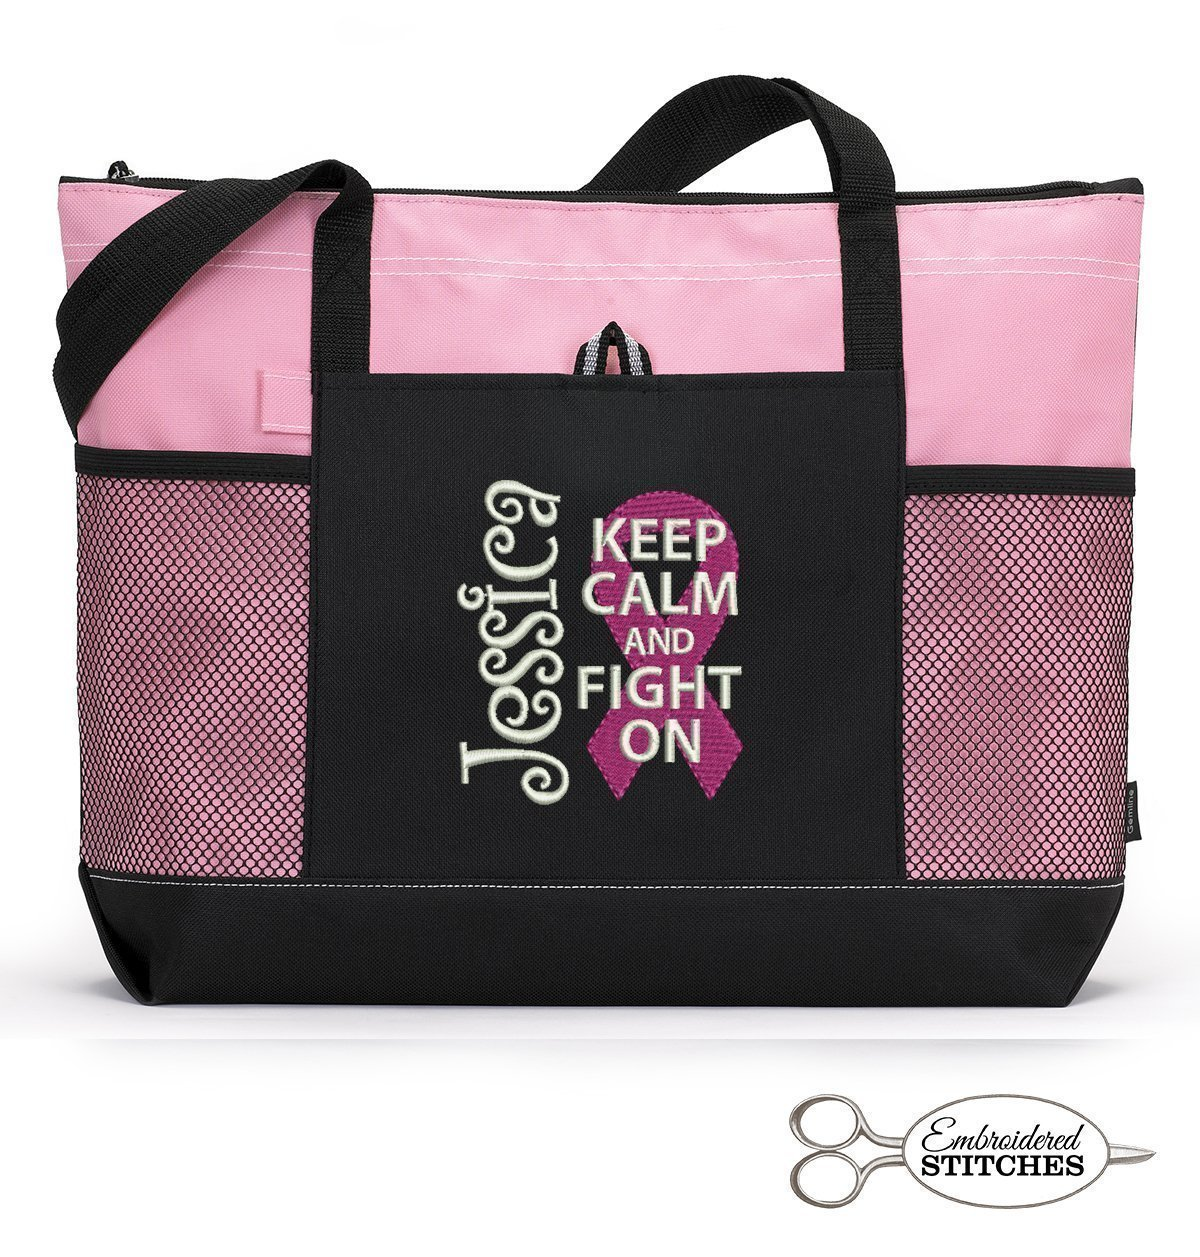 Breast Cancer Awareness Personalized Embroidered Tote Bag with Mesh Pockets